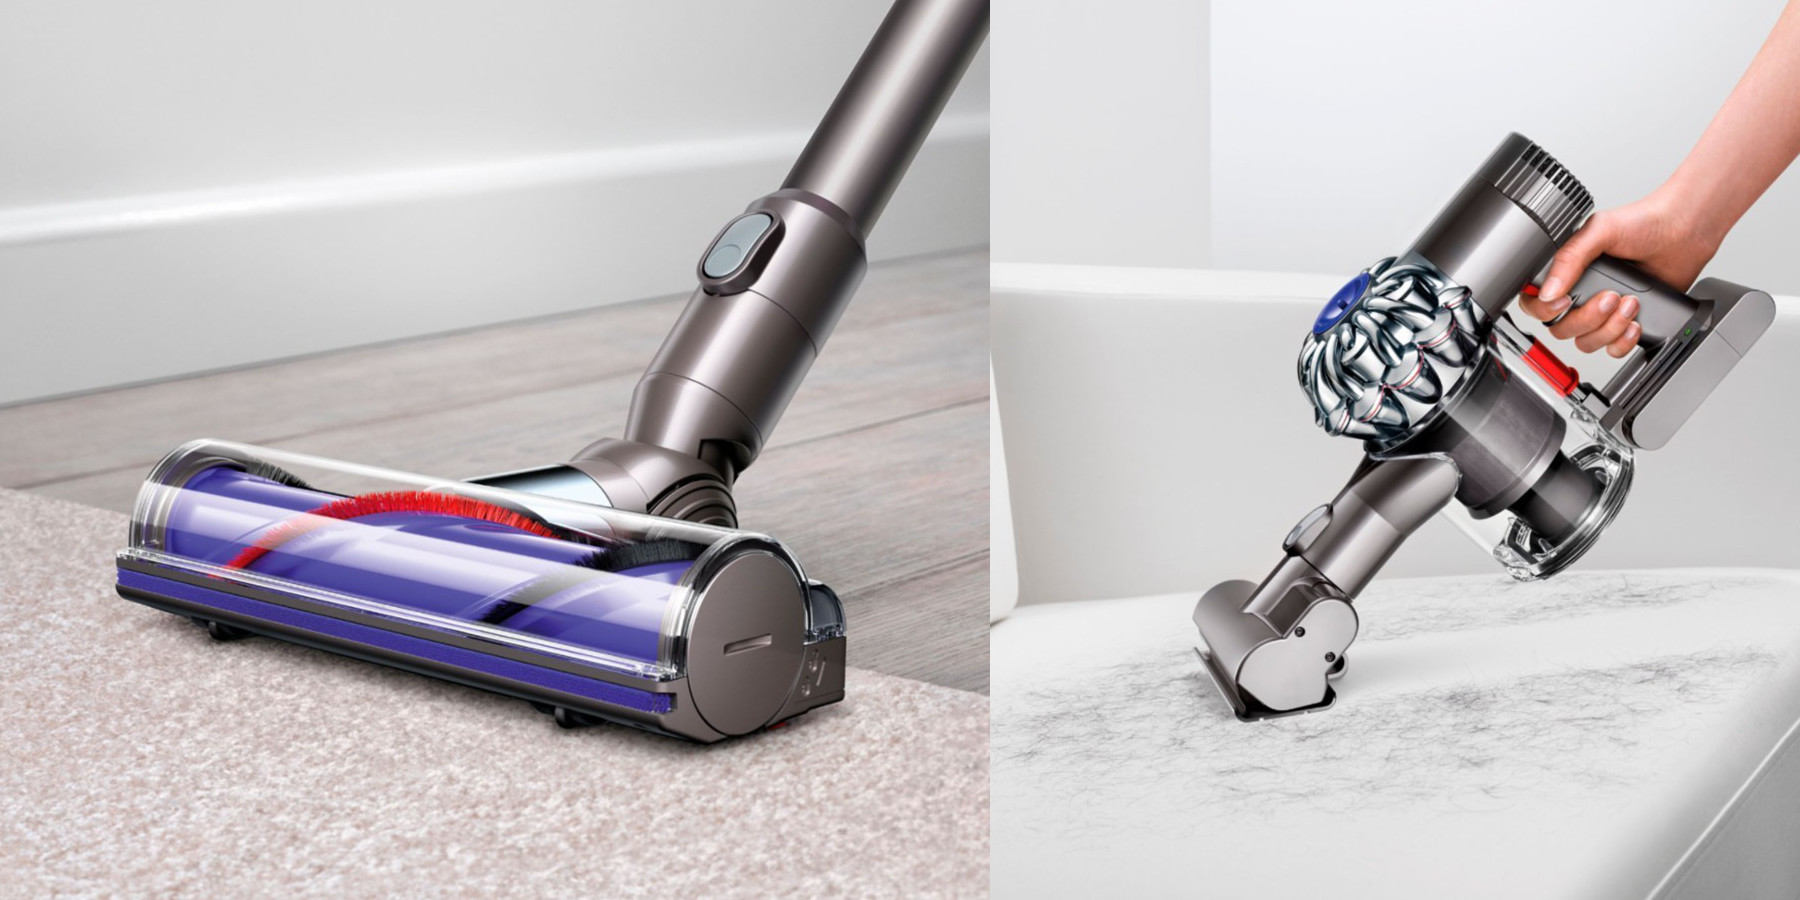 Best Buy offers $80 off Dyson's V6 Animal Cord-Free Stick Vacuum: $200 shipped, today only